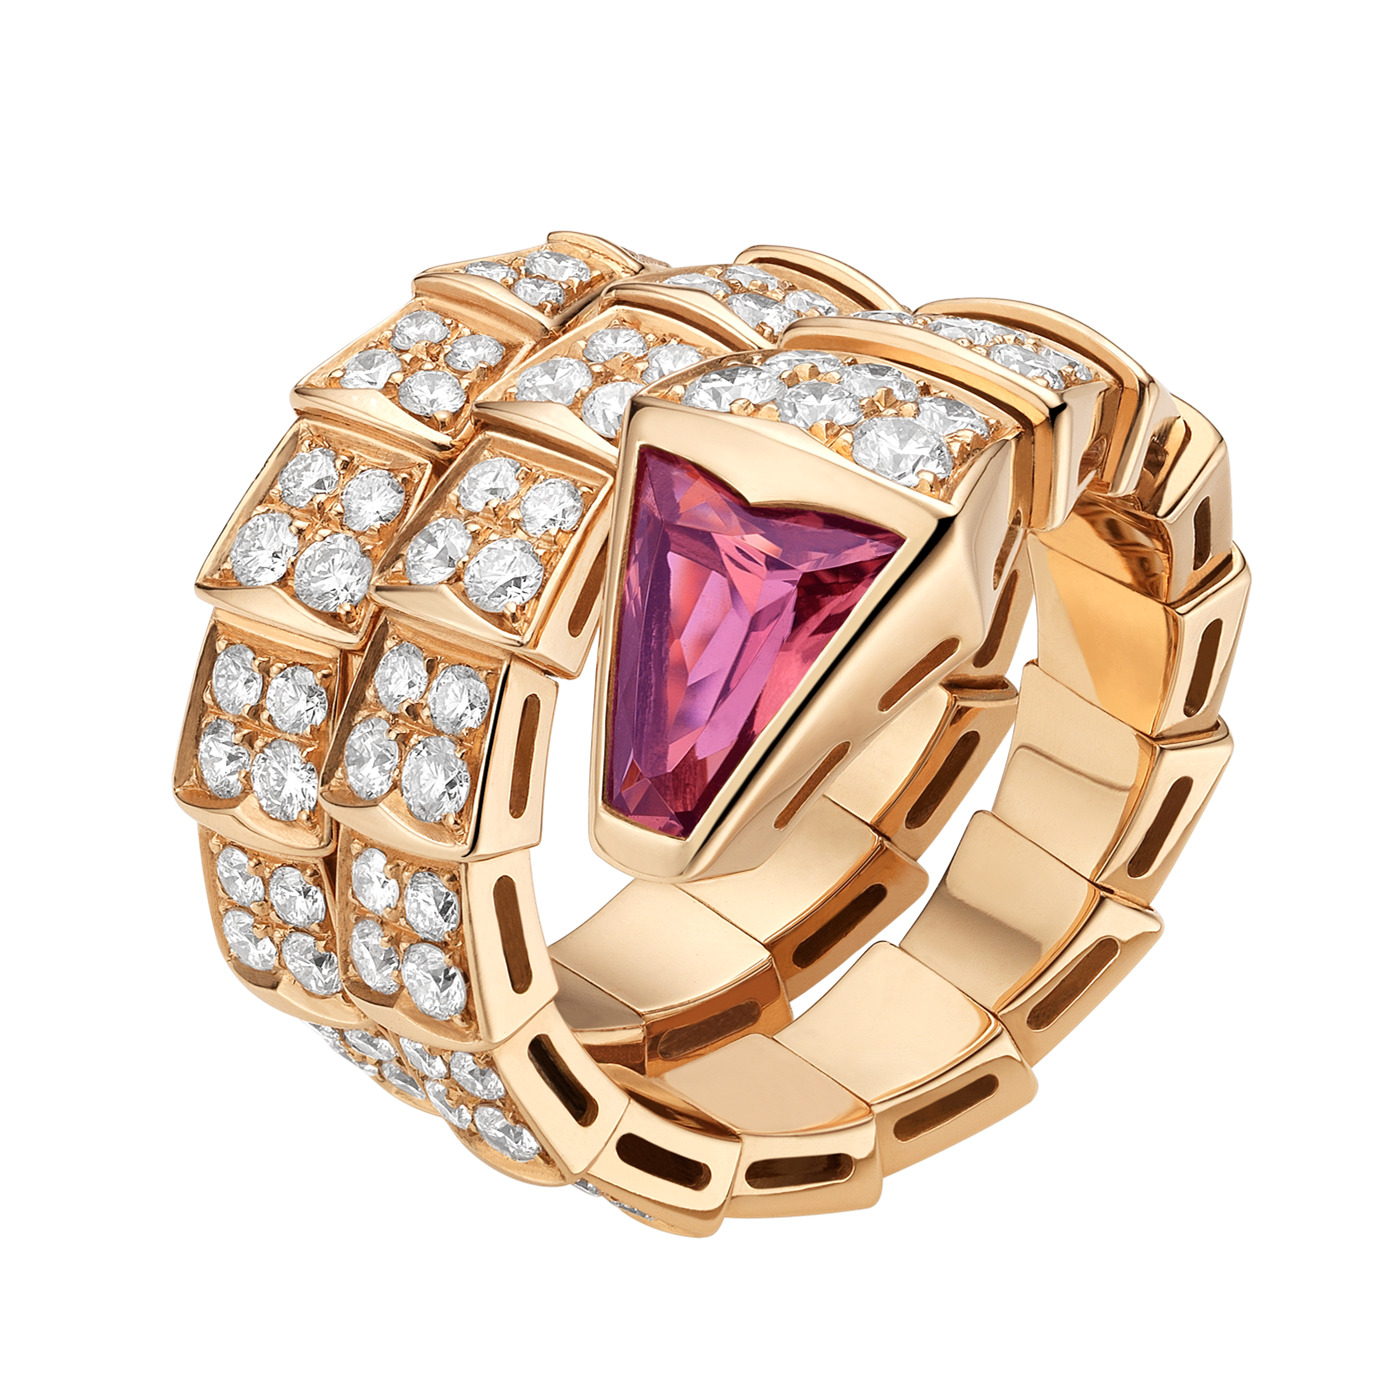 Bvlgari Serpenti replica ring pink gold double-spiral red tourmaline